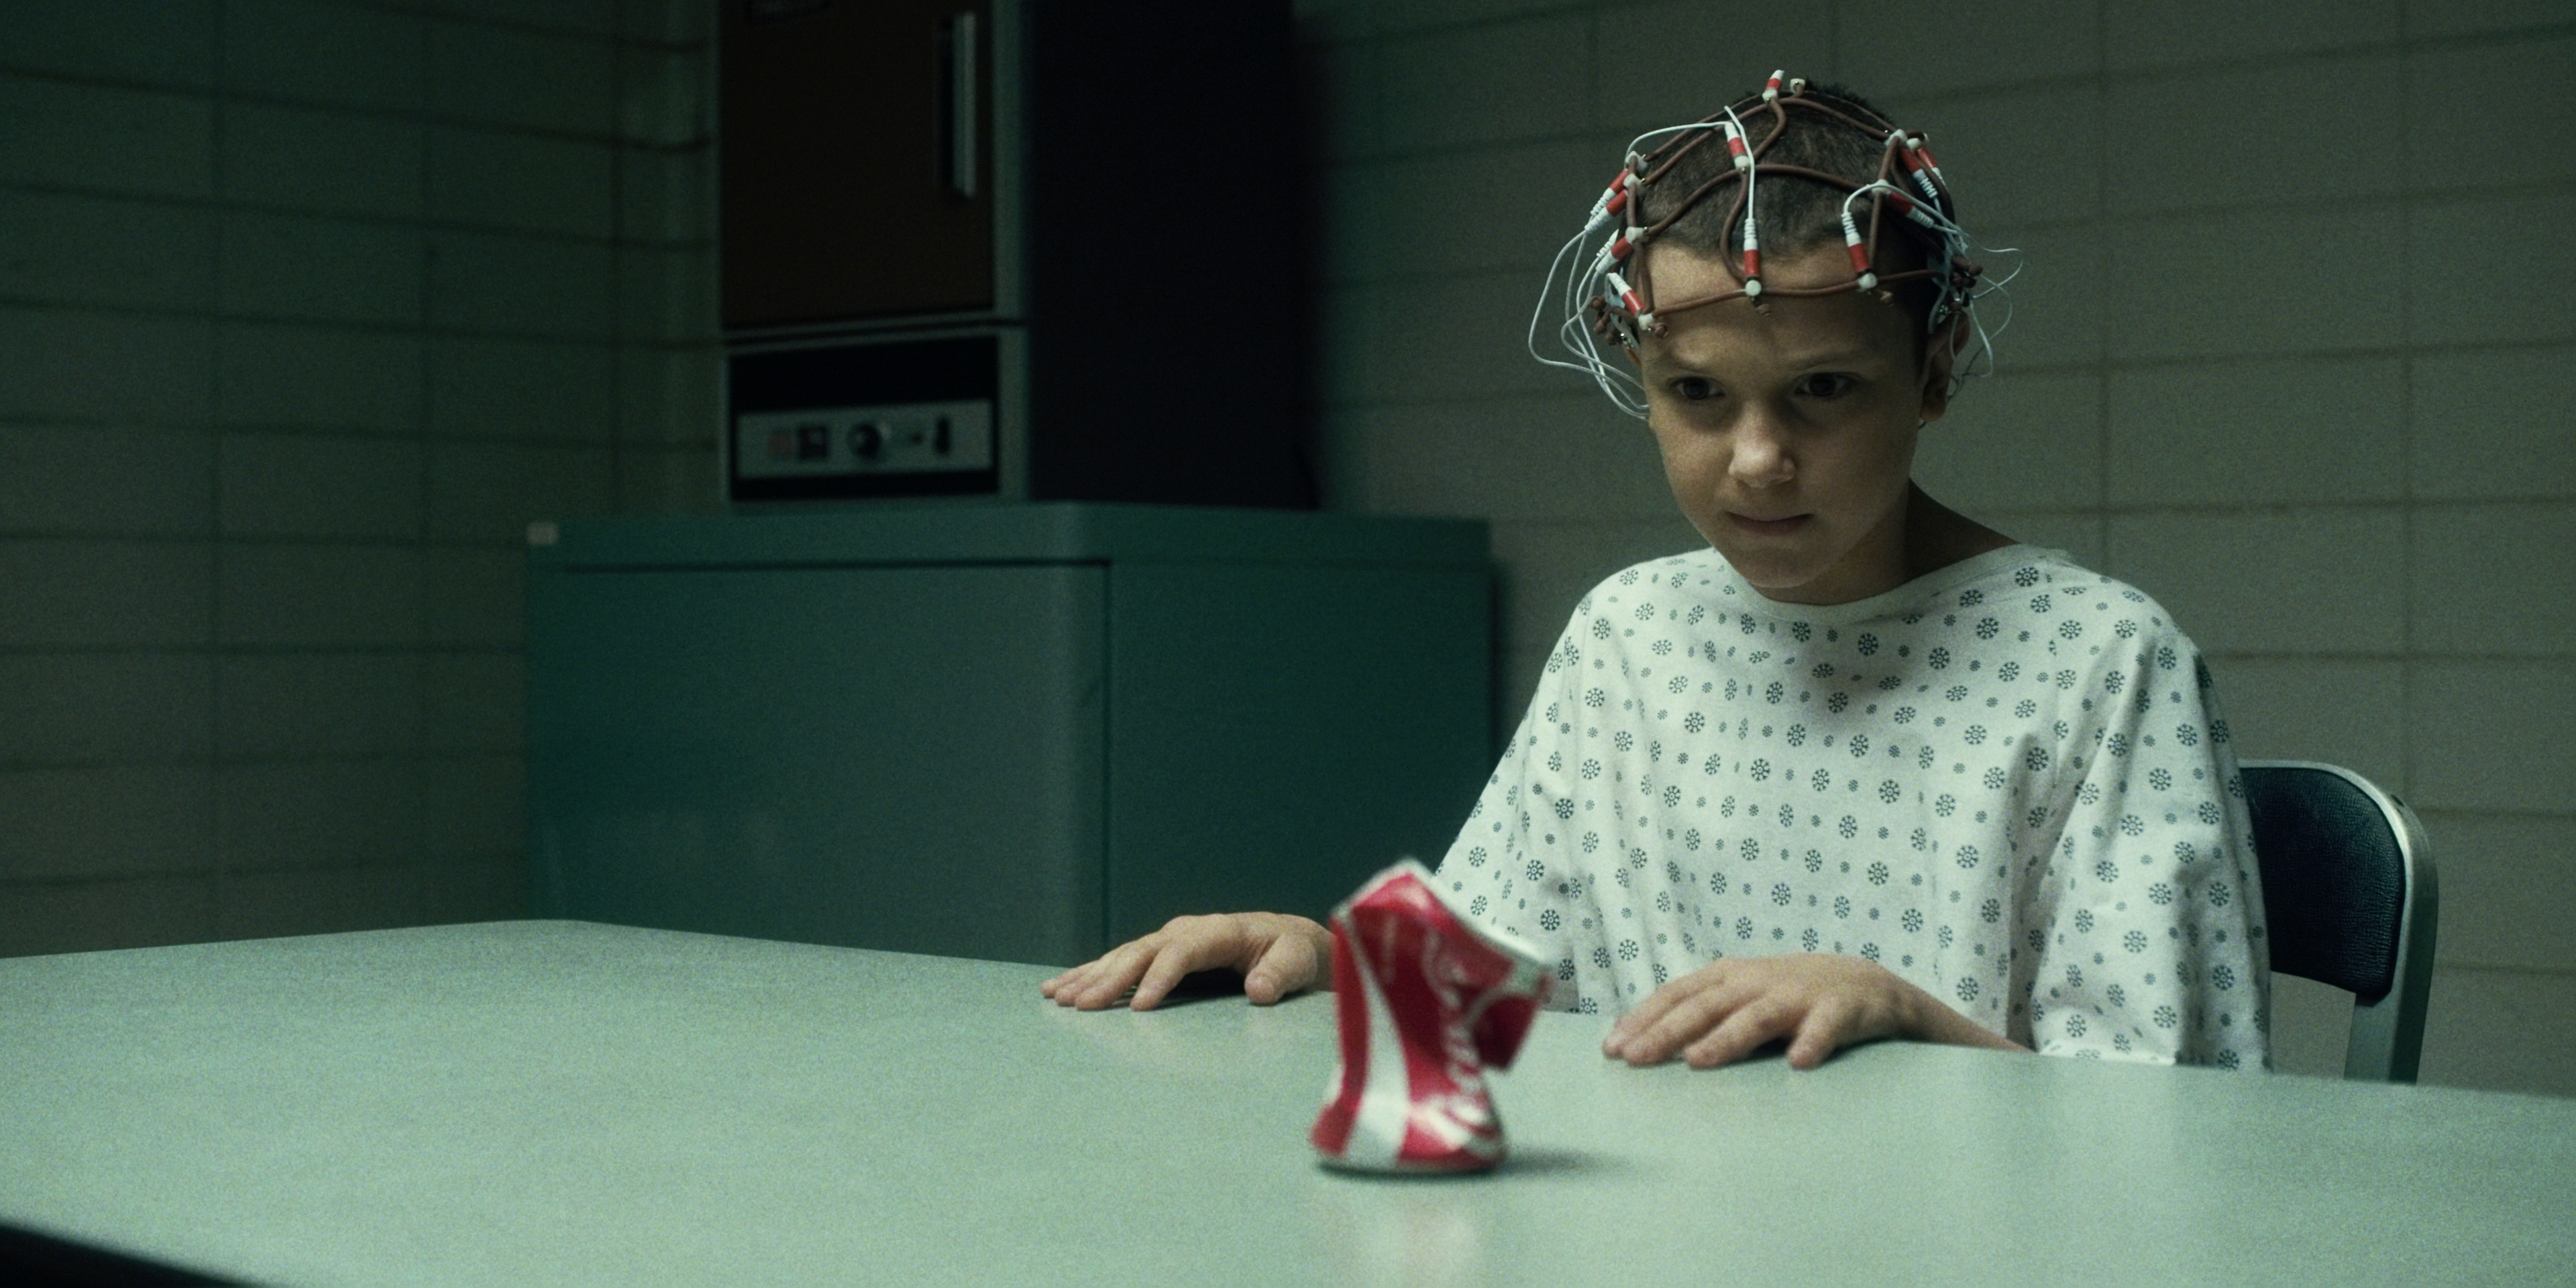 Eleven and coke can